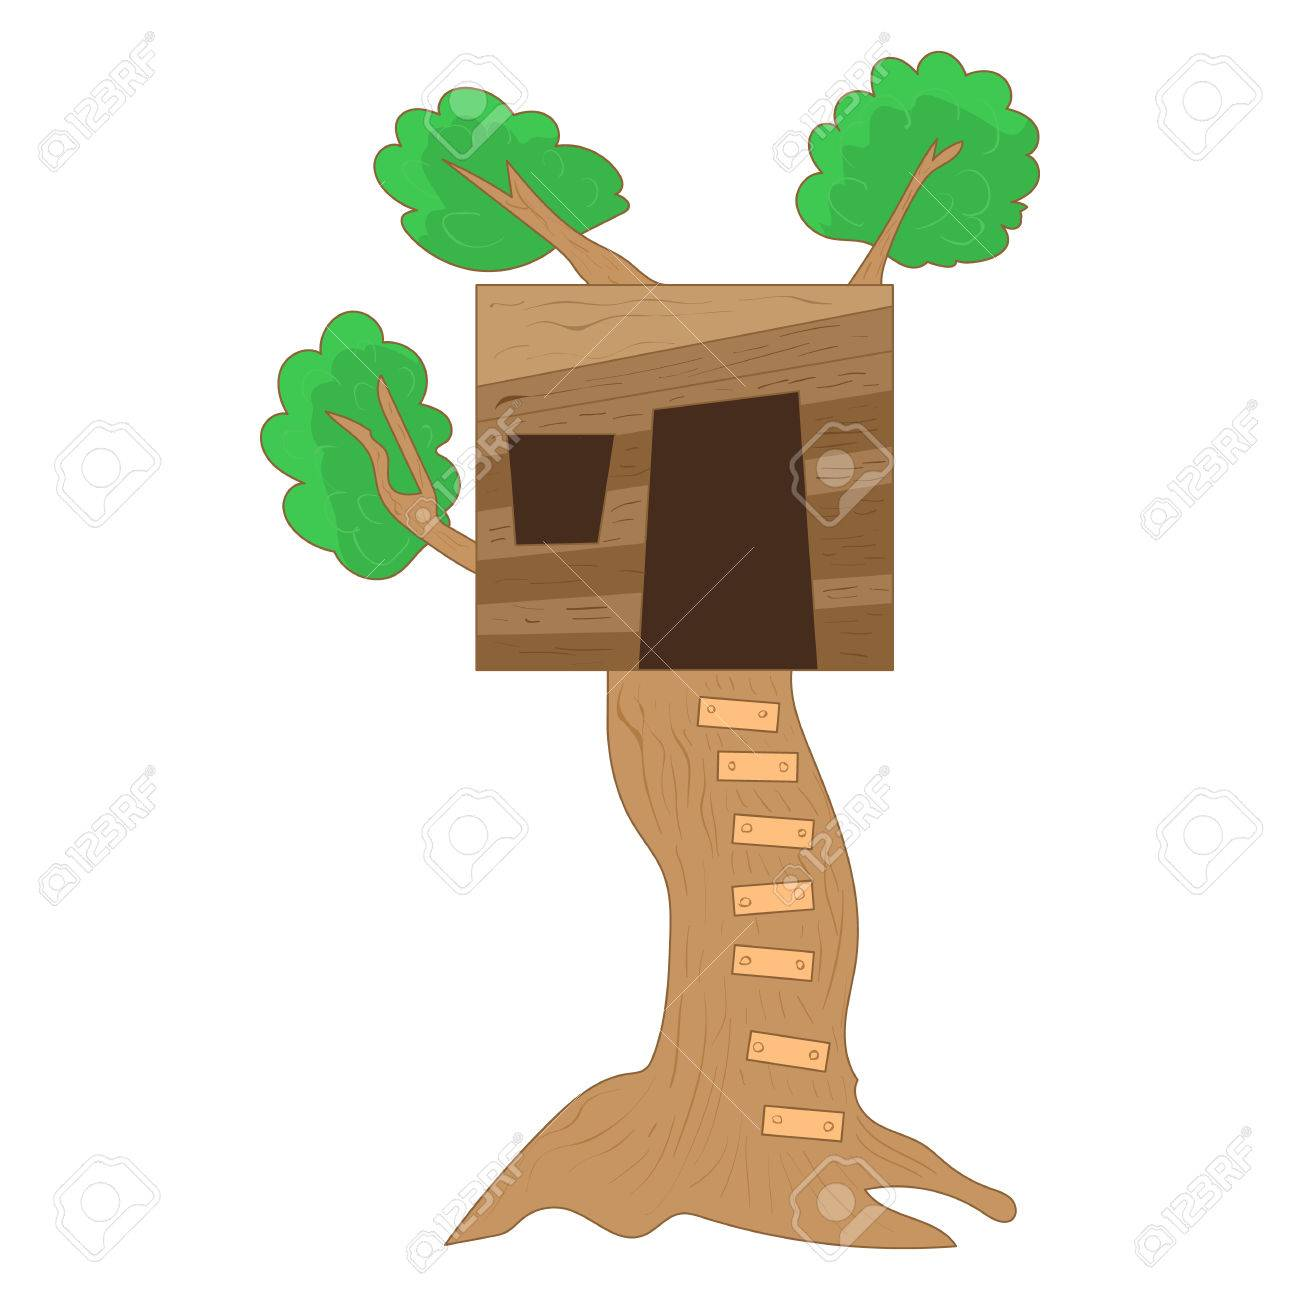 Small Tree House Icon In Cartoon Style On A White Background Royalty Free Cliparts Vectors And Stock Illustration Image 59062060 Stzh026pattern type:tree housequantity:1pcs/lotsize:size:11 style simple cartoon autumn tree element decorative pattern, autumn tree, fall, autumn png and vector with transparent background for free download. 123rf com